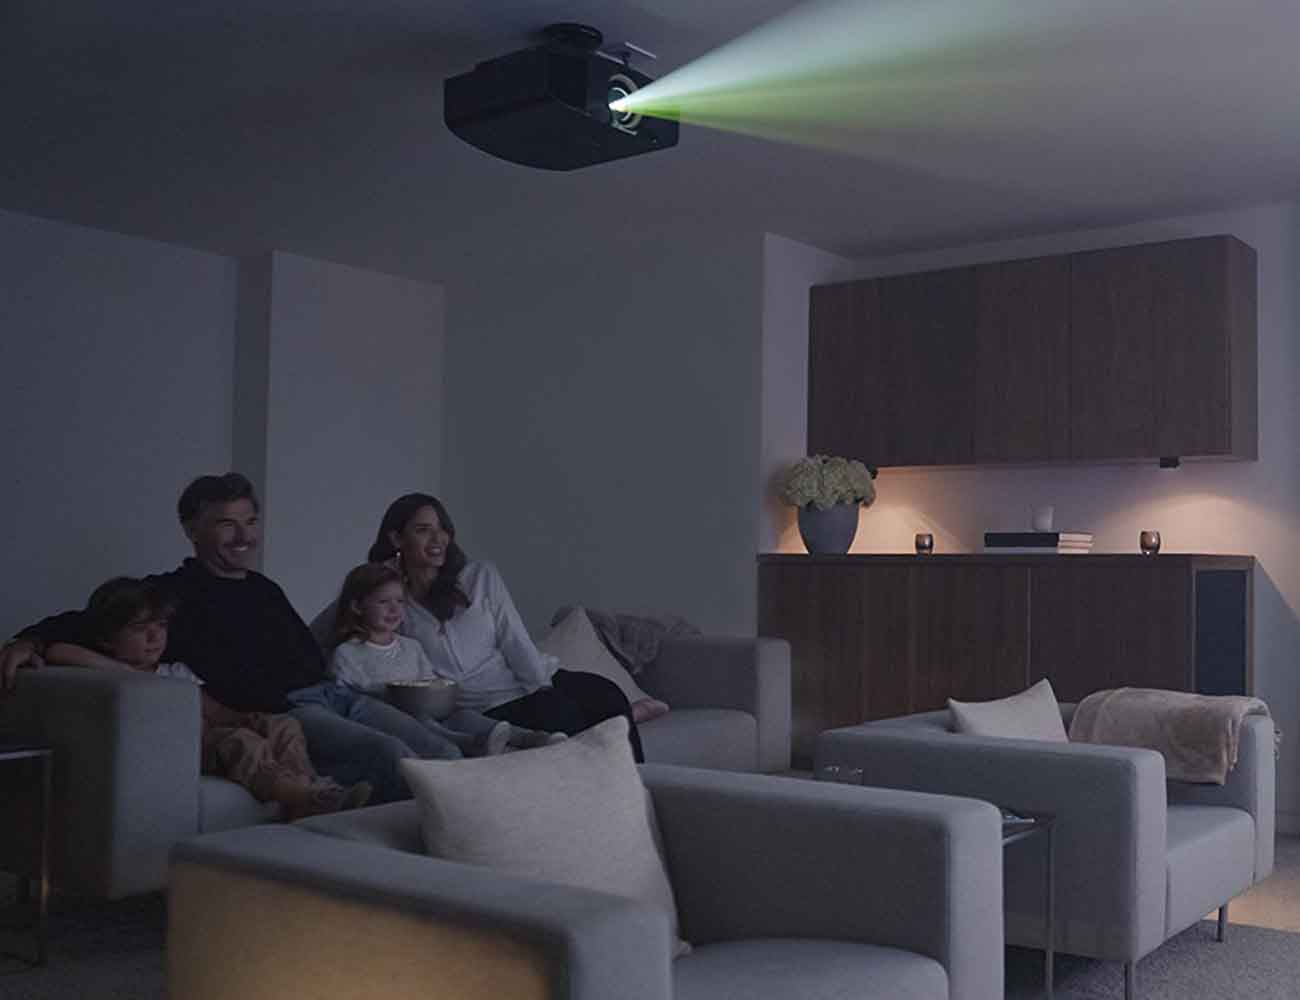 Sony+4K+3D+SXRD+Home+Theater%2FGaming+Projector